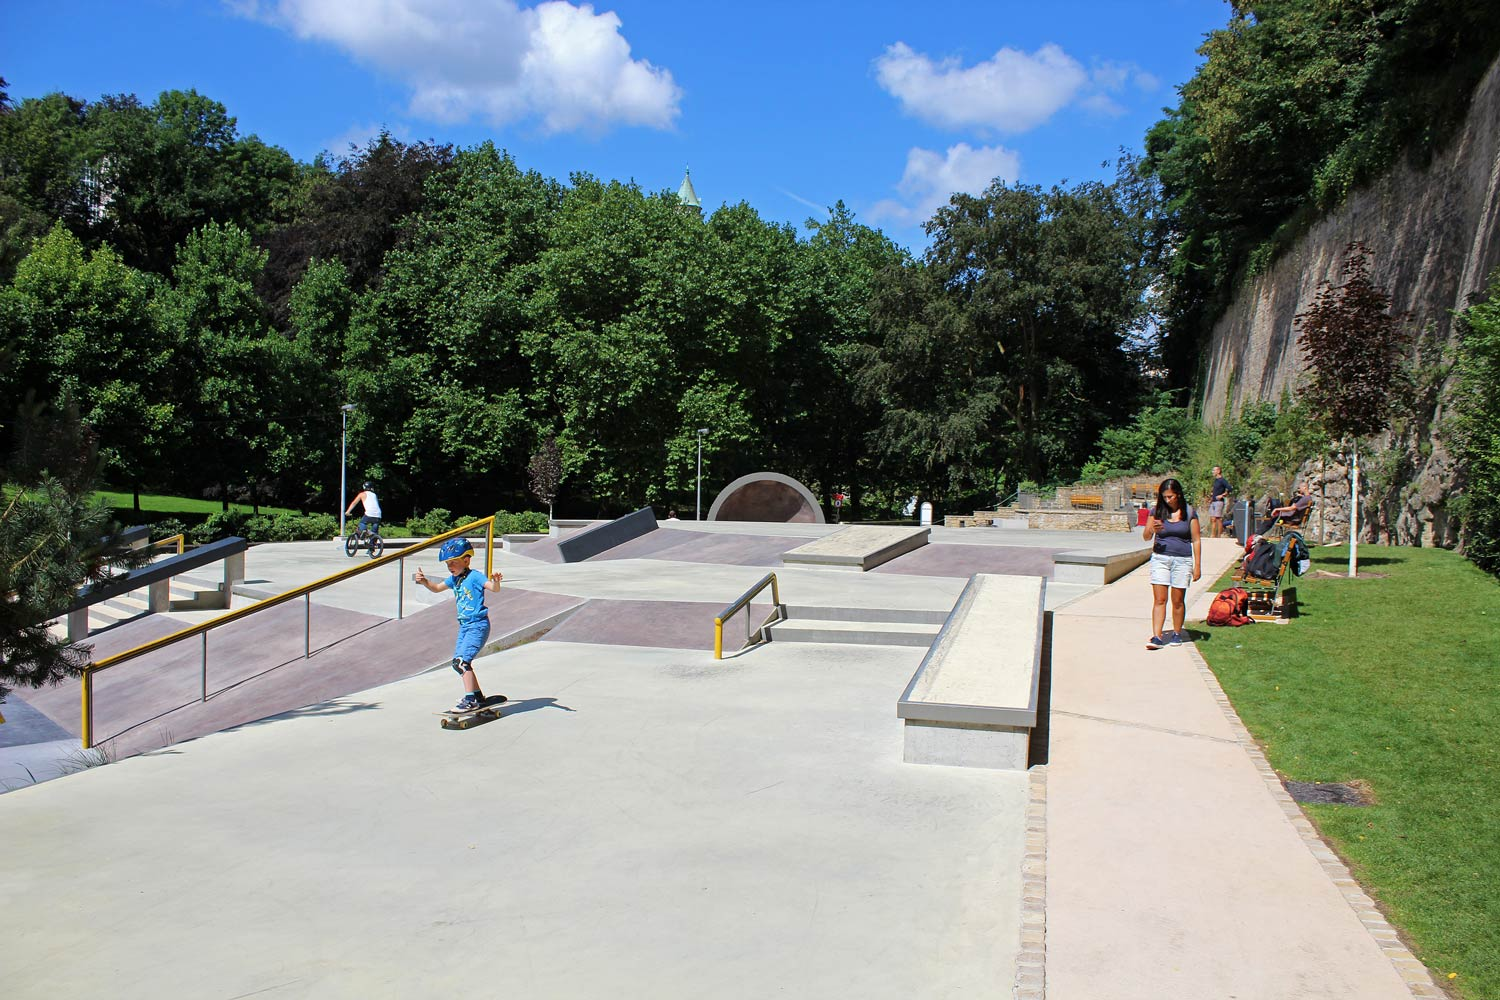 6fa9f1e125 The whole project has been designed by the French company Constructo  Skatepark Architecture